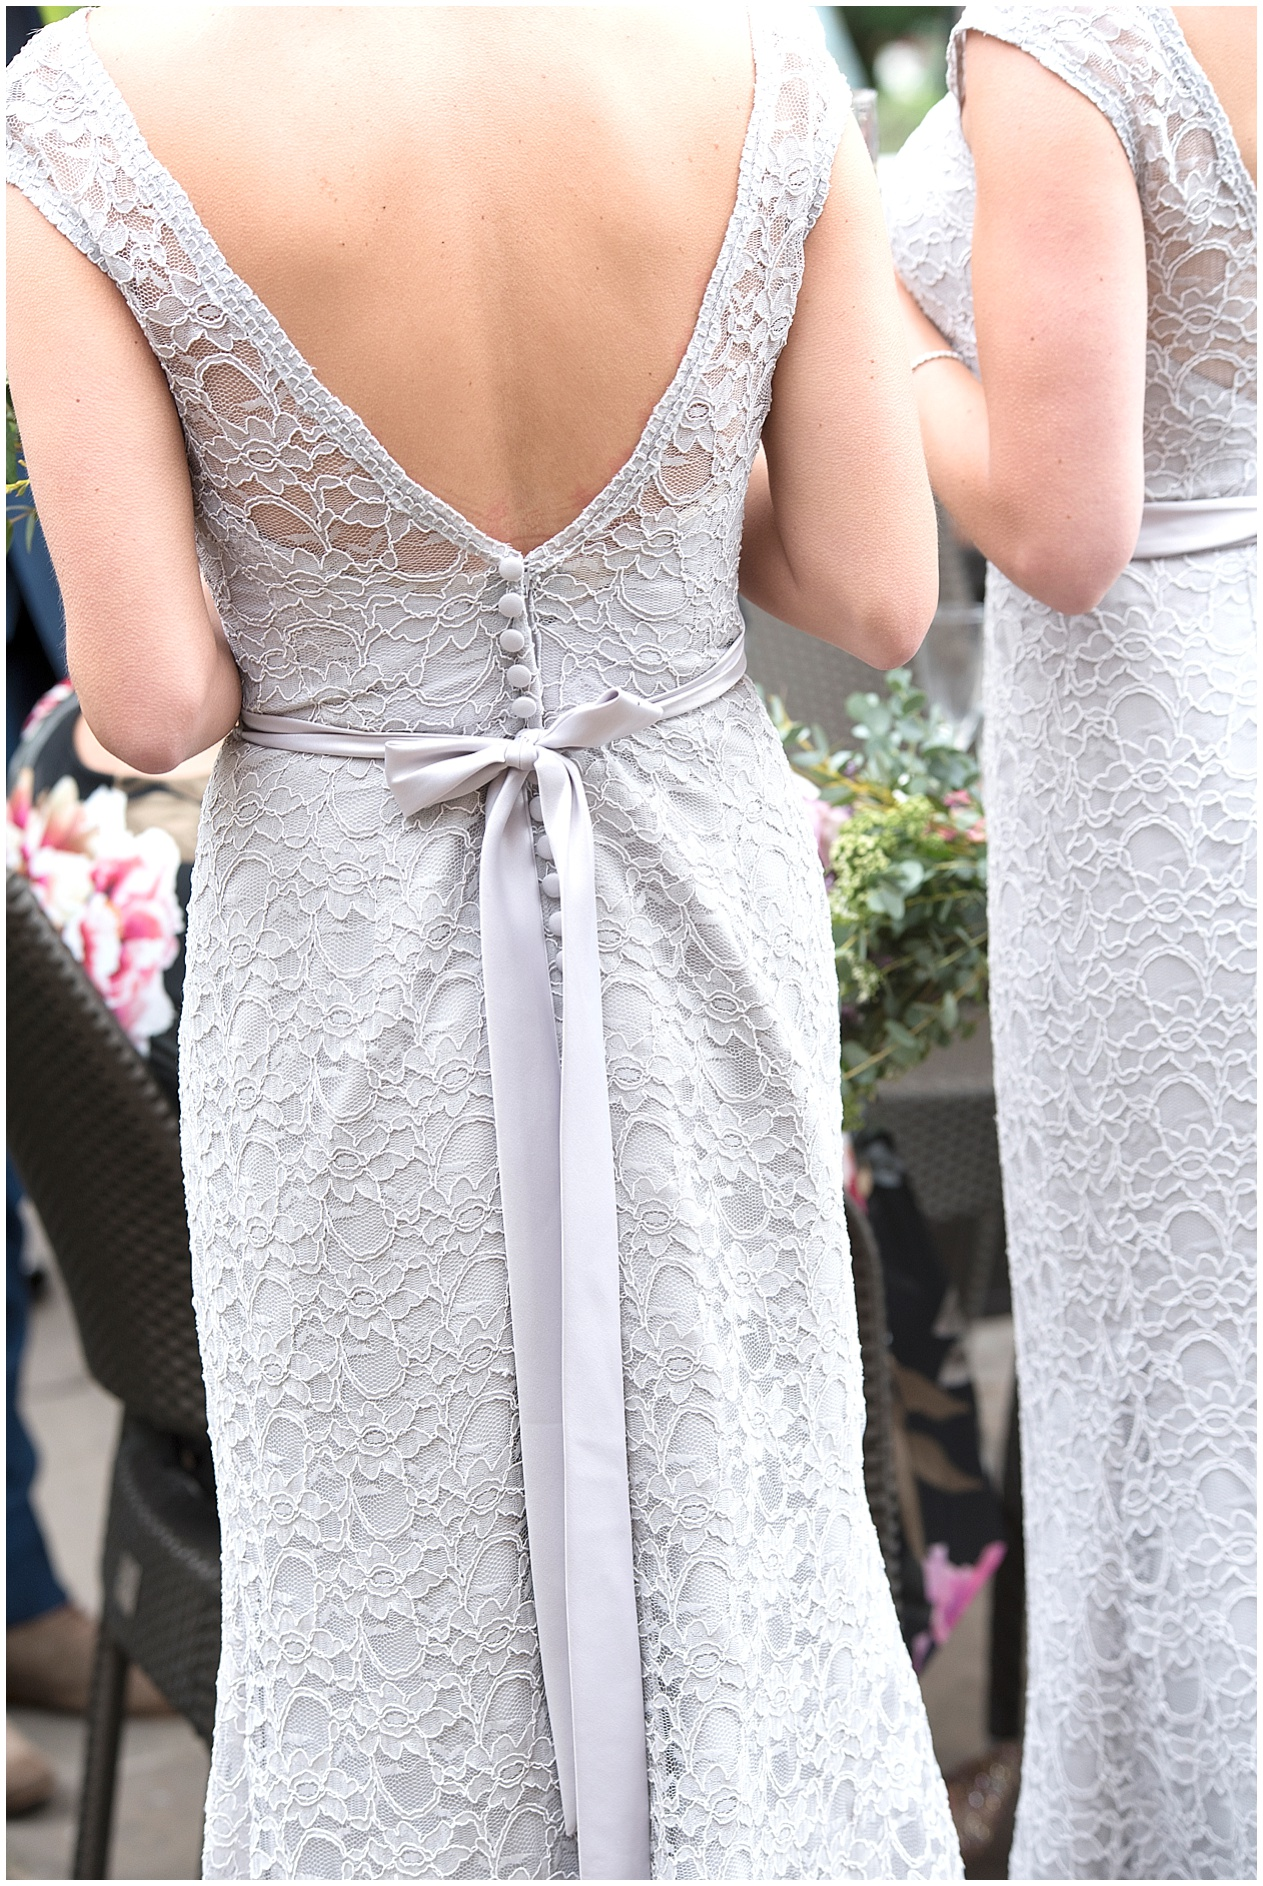 The back of some beautiful bridesmaids dresses.